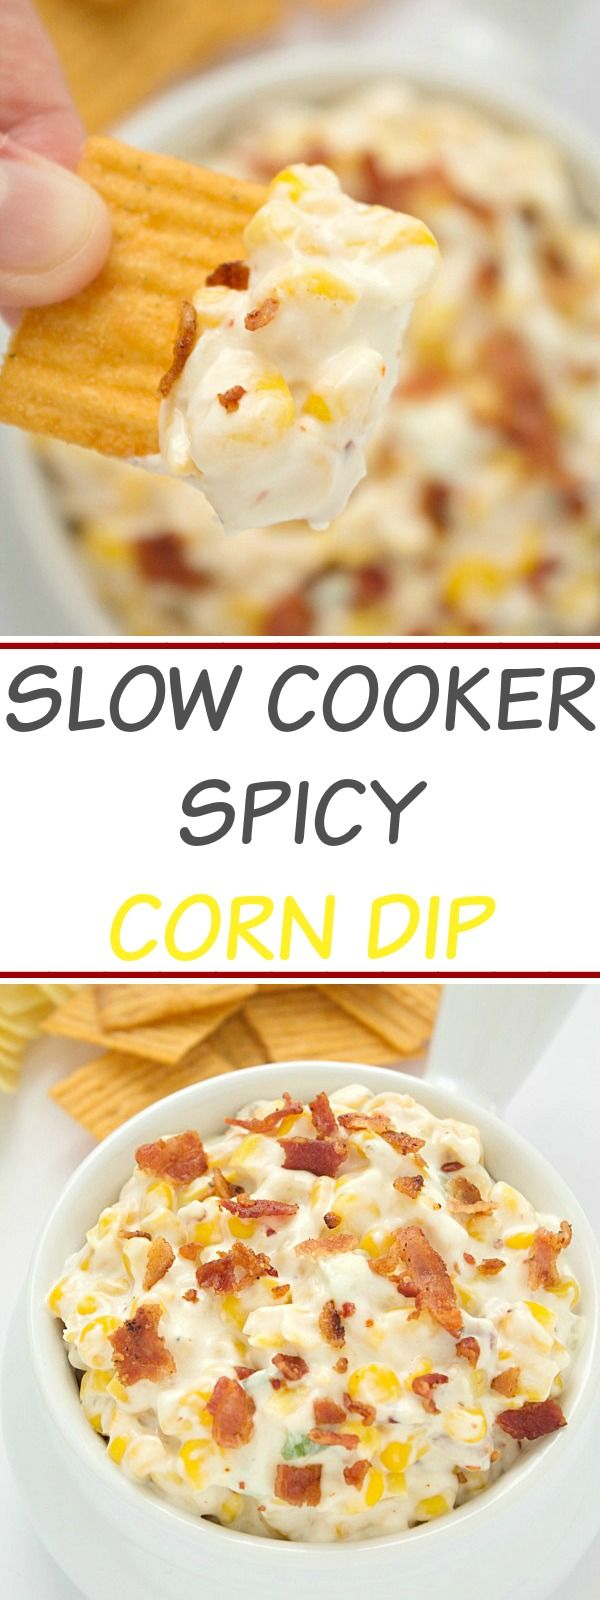 Slow Cooker Spicy Corn Dip  ---   An out-of-this-world delicious and very addicting slow cooker spicy corn dip recipe! Great for the big games